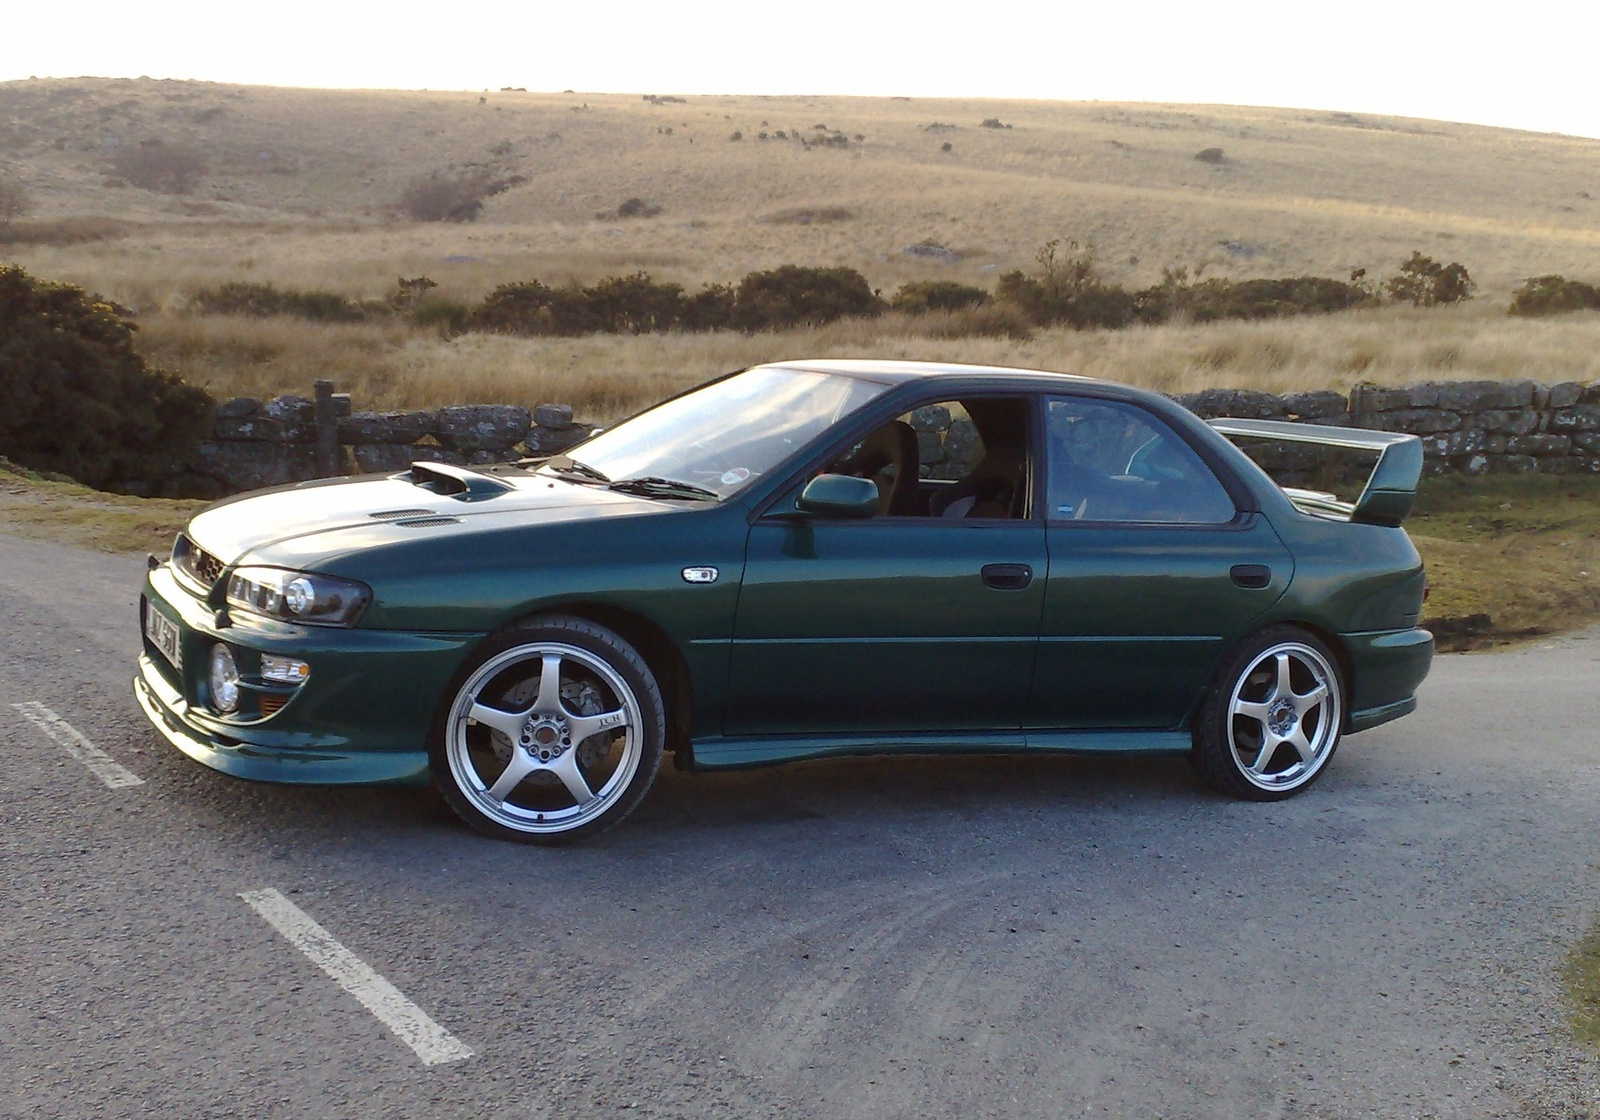 Picture of 1999 Subaru Impreza 4 Dr L AWD Sedan, exterior